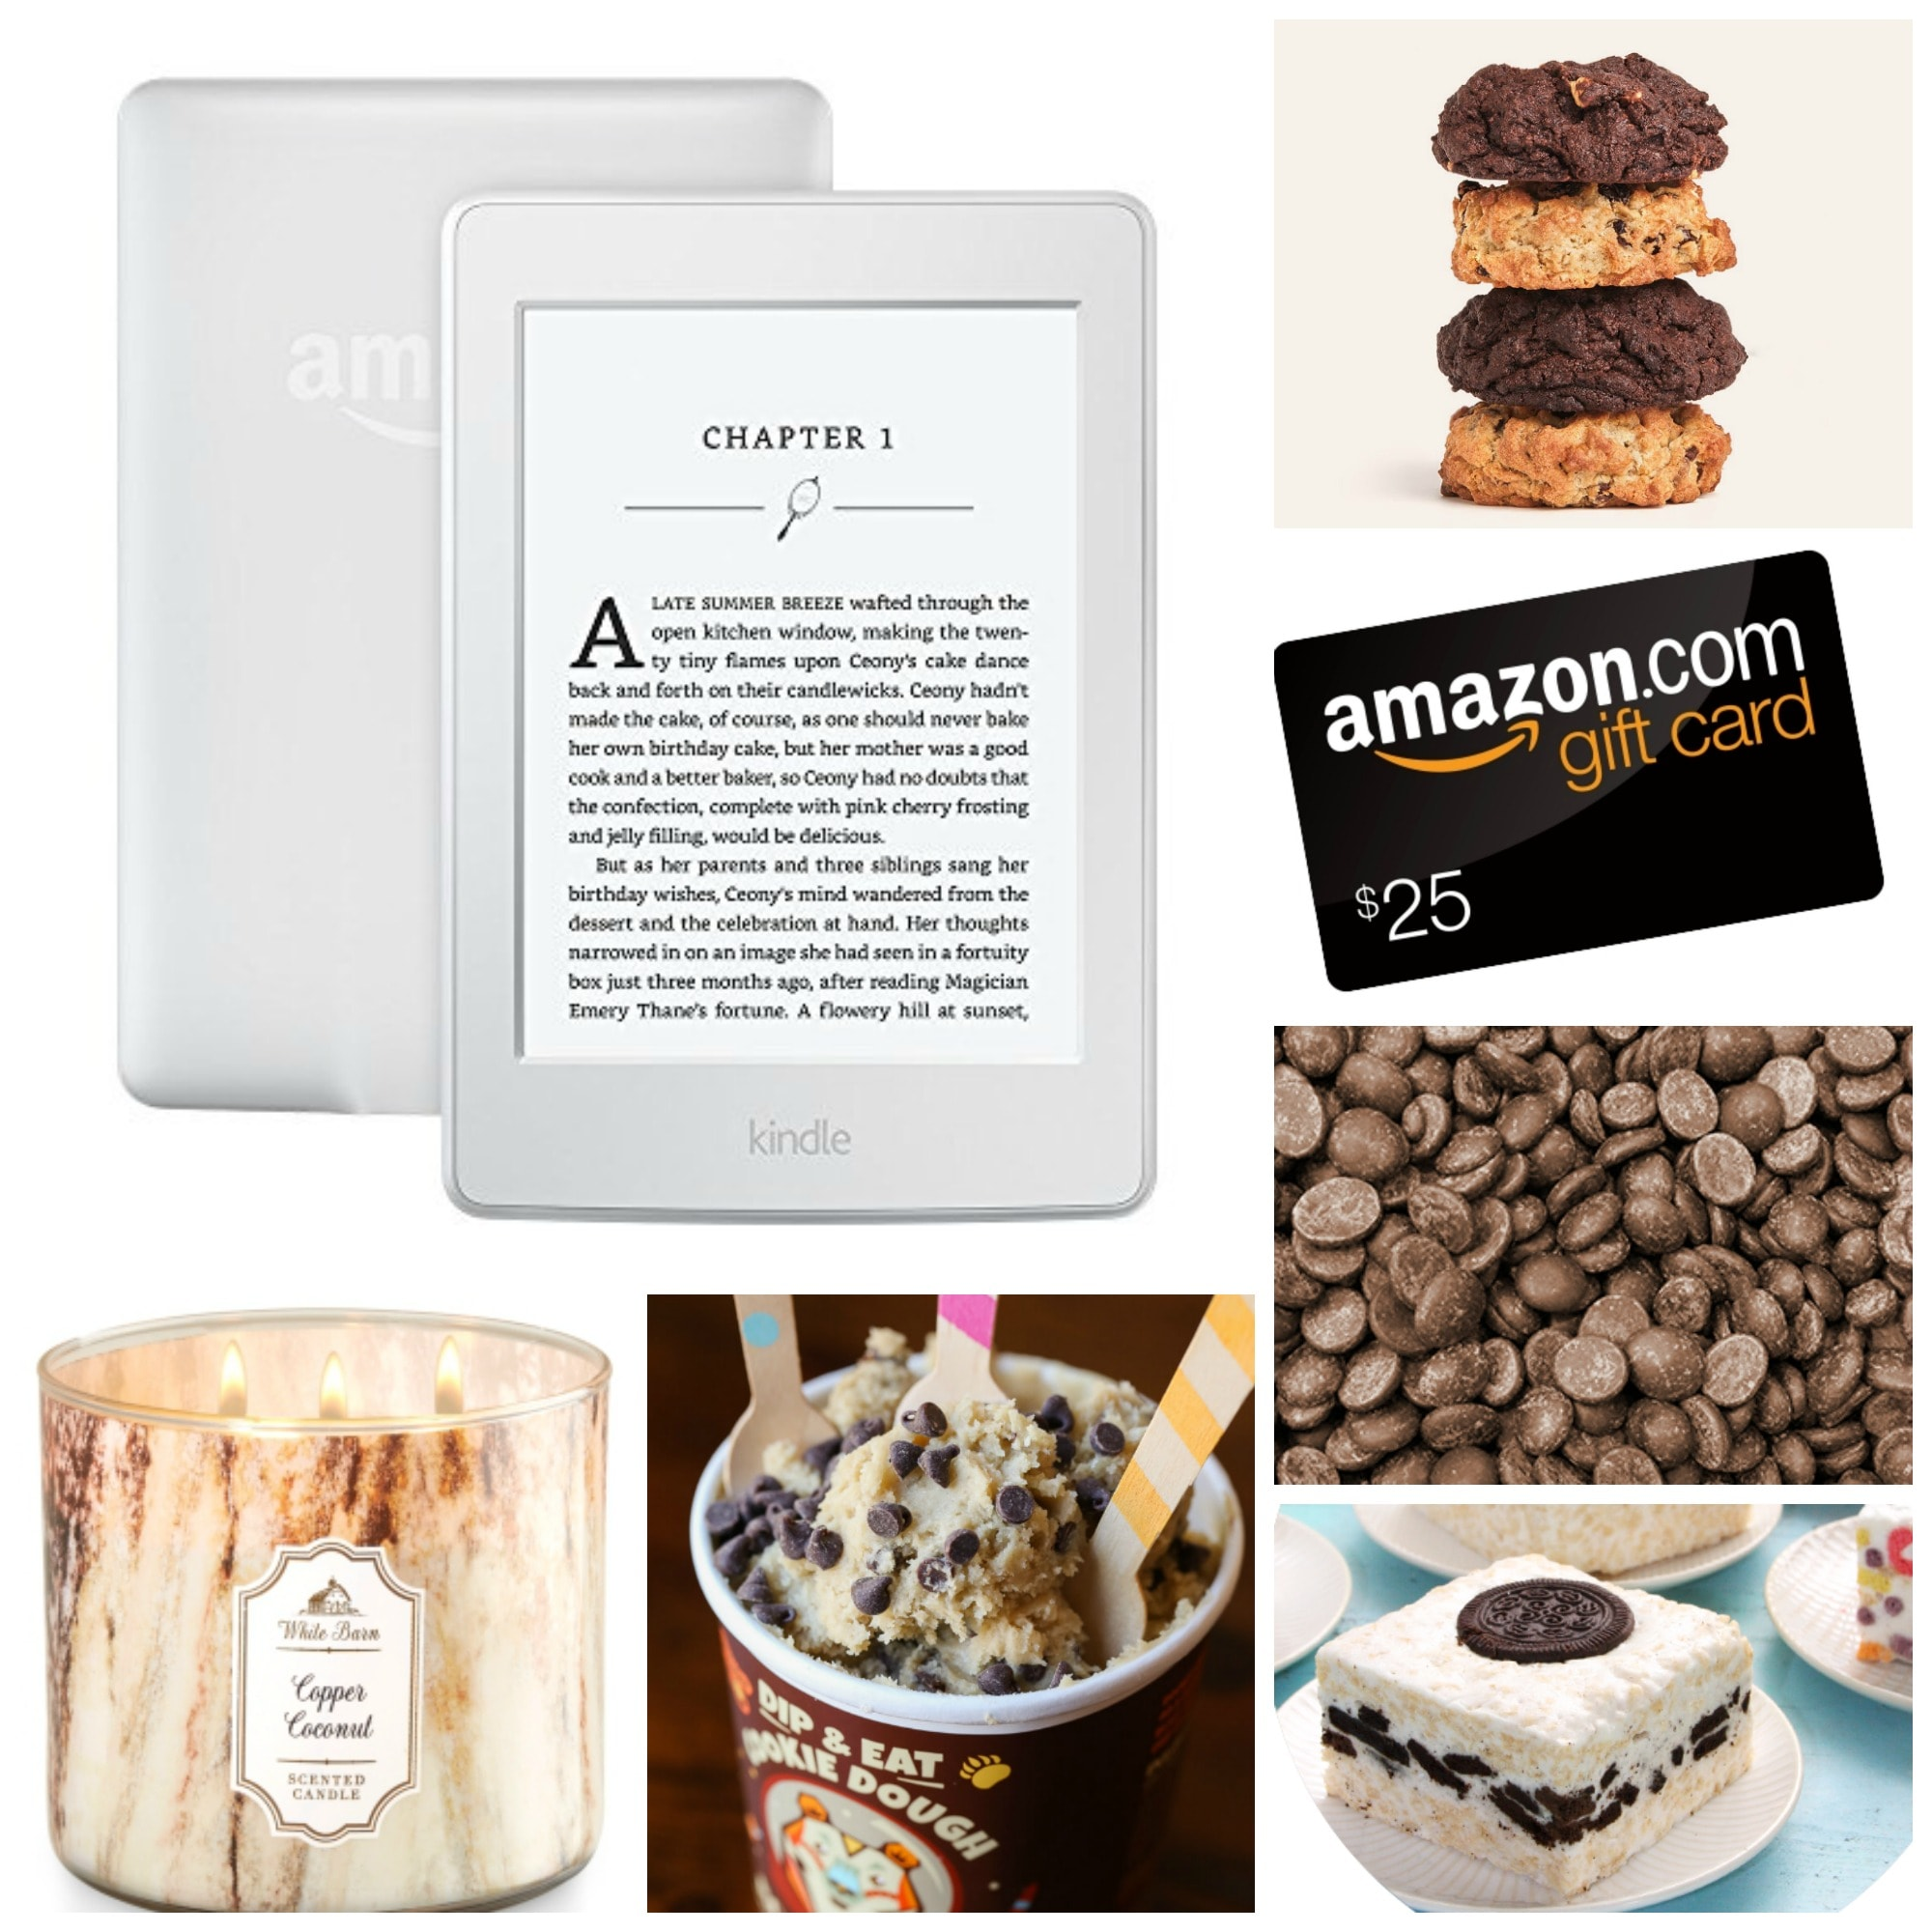 A Collage of Pictures of an iPad, an Amazon Gift Card and Various Desserts